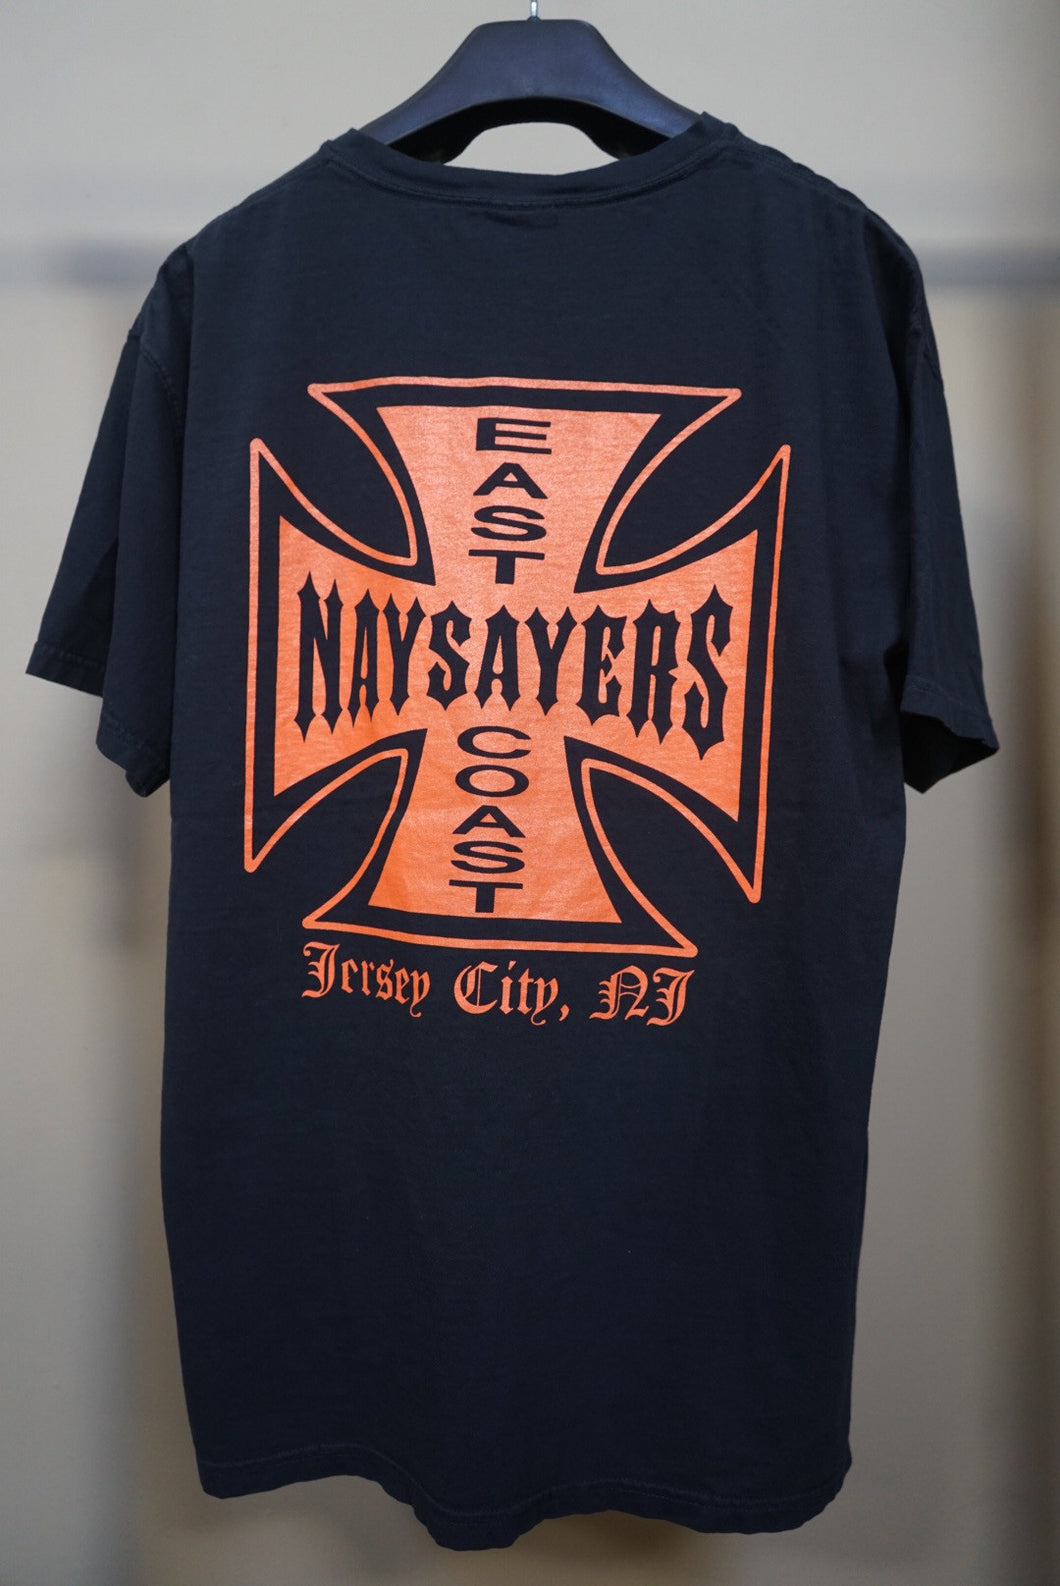 East Coast Naysayers short sleeve